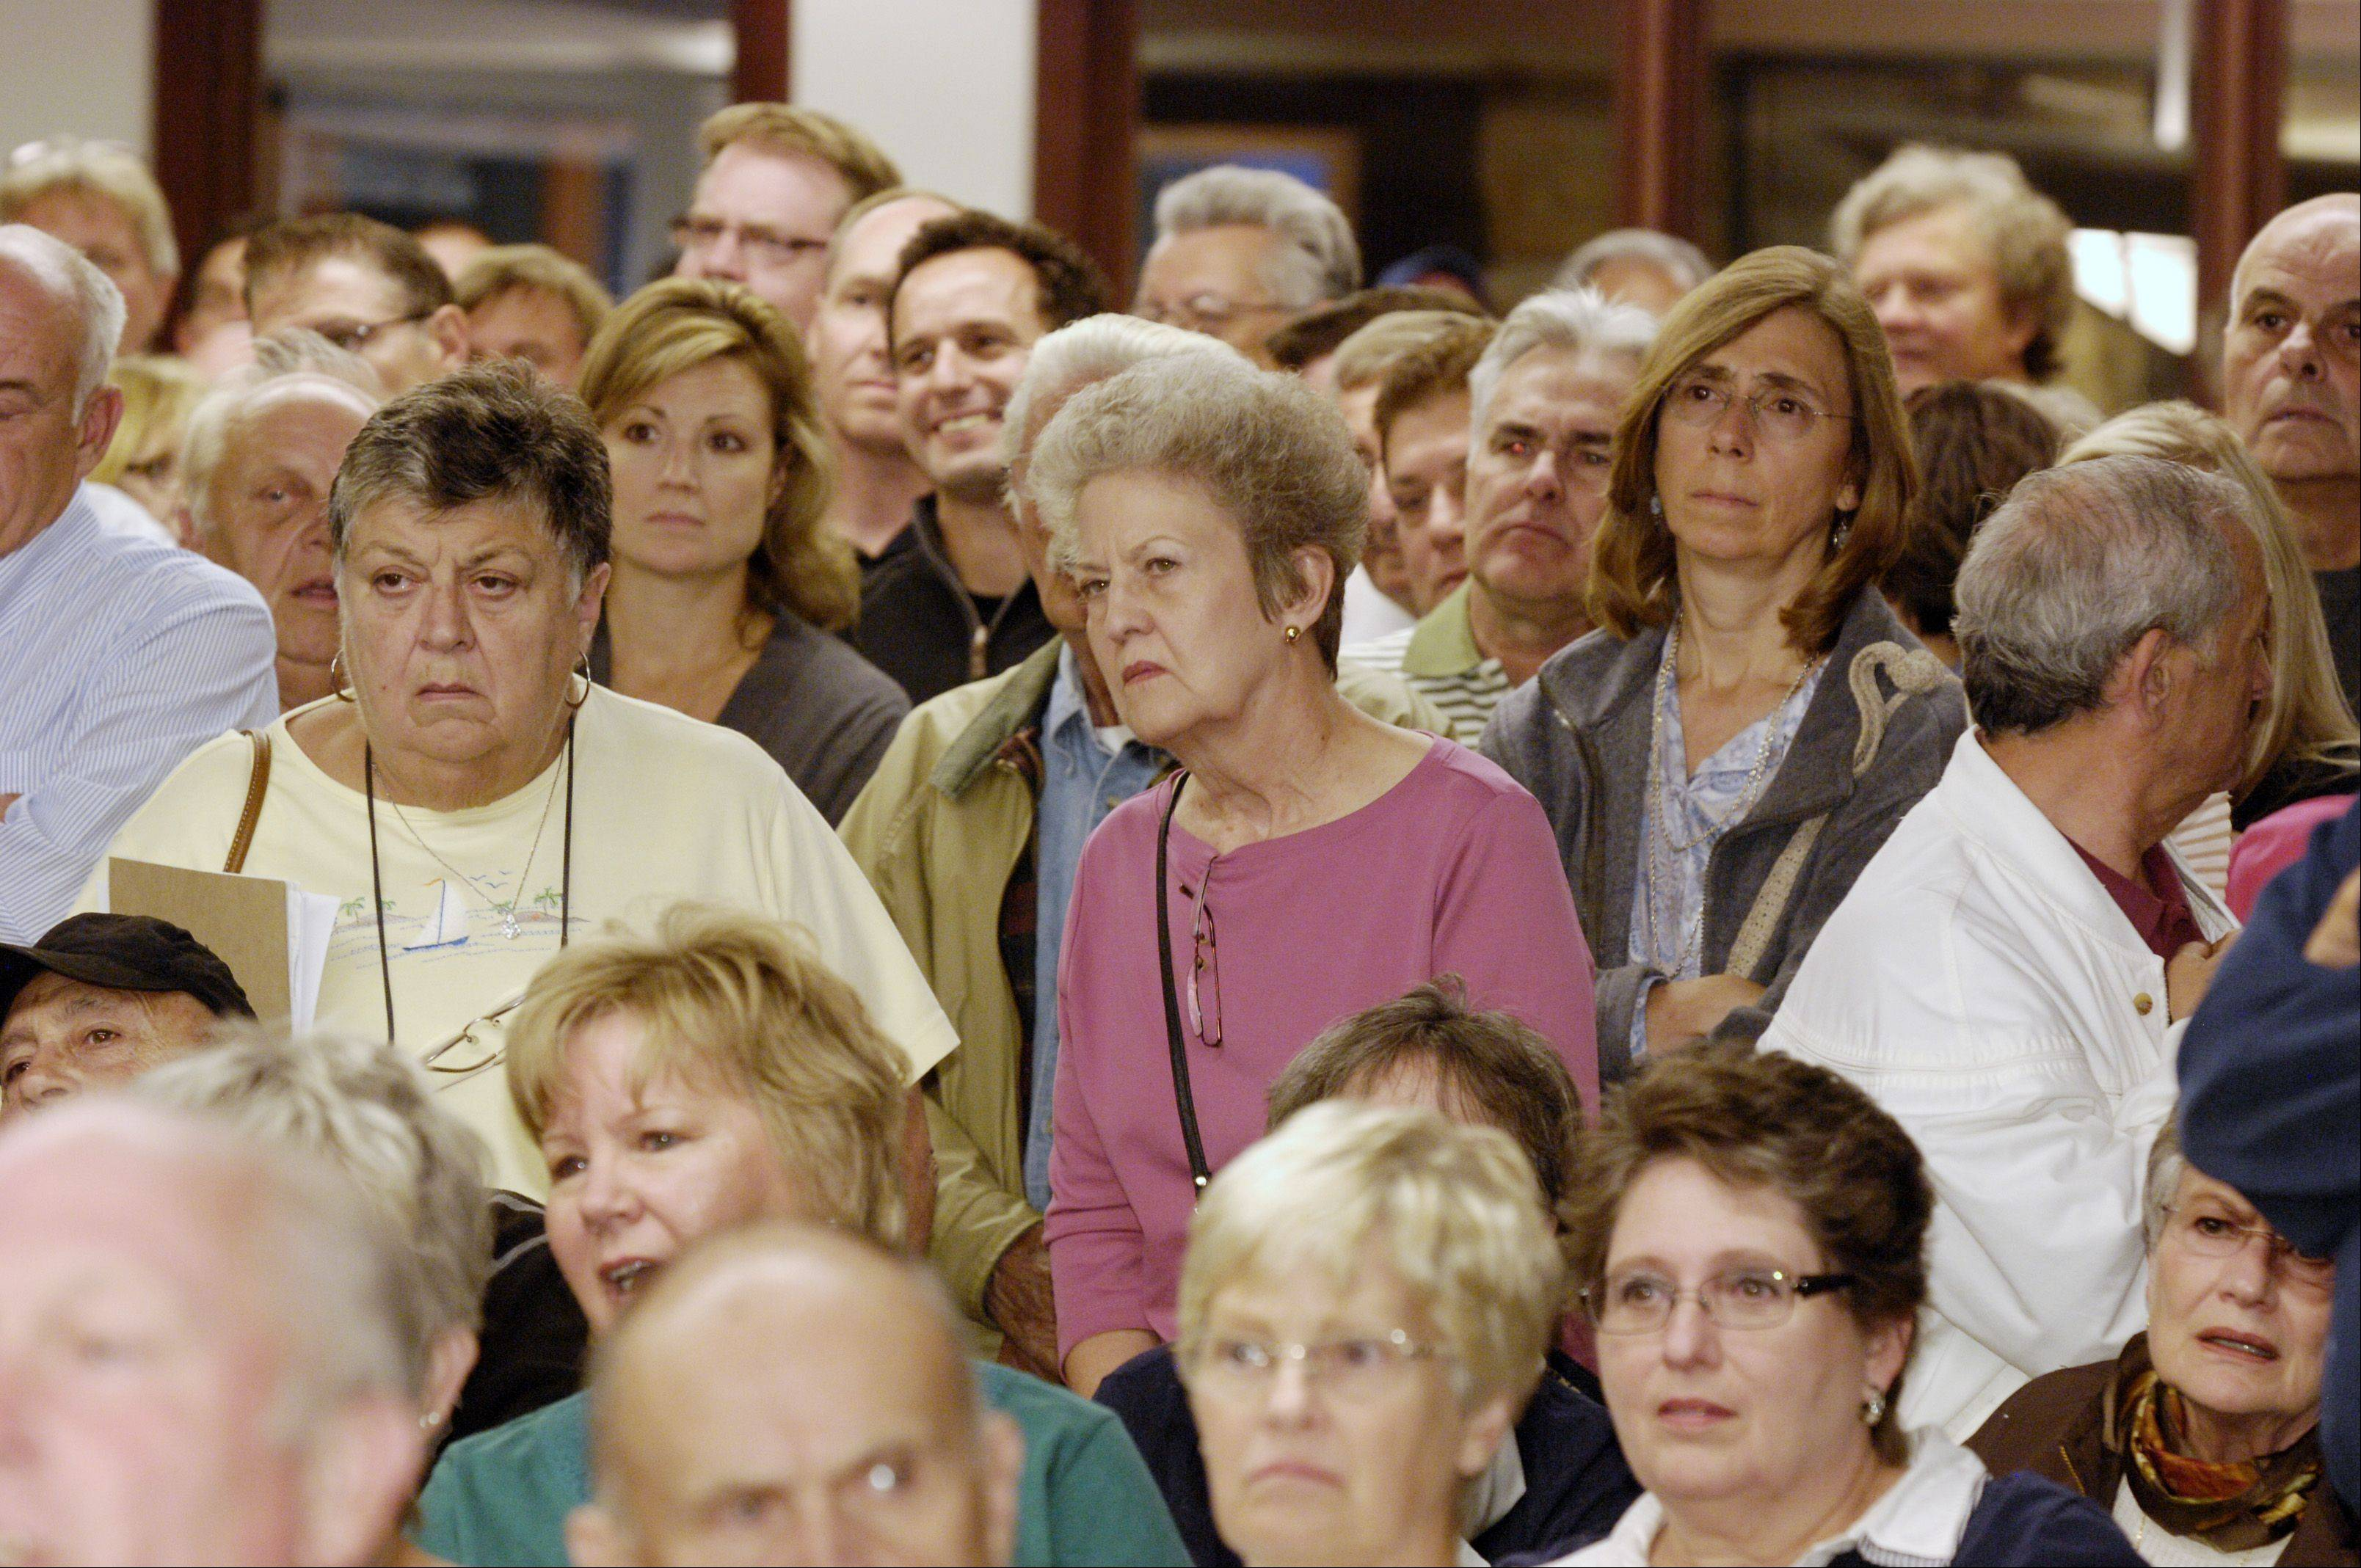 Disapproving Itasca residents listen Wednesday as Itasca plan commission Chairman Mark Kischner postponed a public hearing on a proposed church. The fire marshal estimated 400 people were there, well beyond the 267-person occupancy for the village hall board room. The new hearing will be at 7 p.m. Oct. 17.